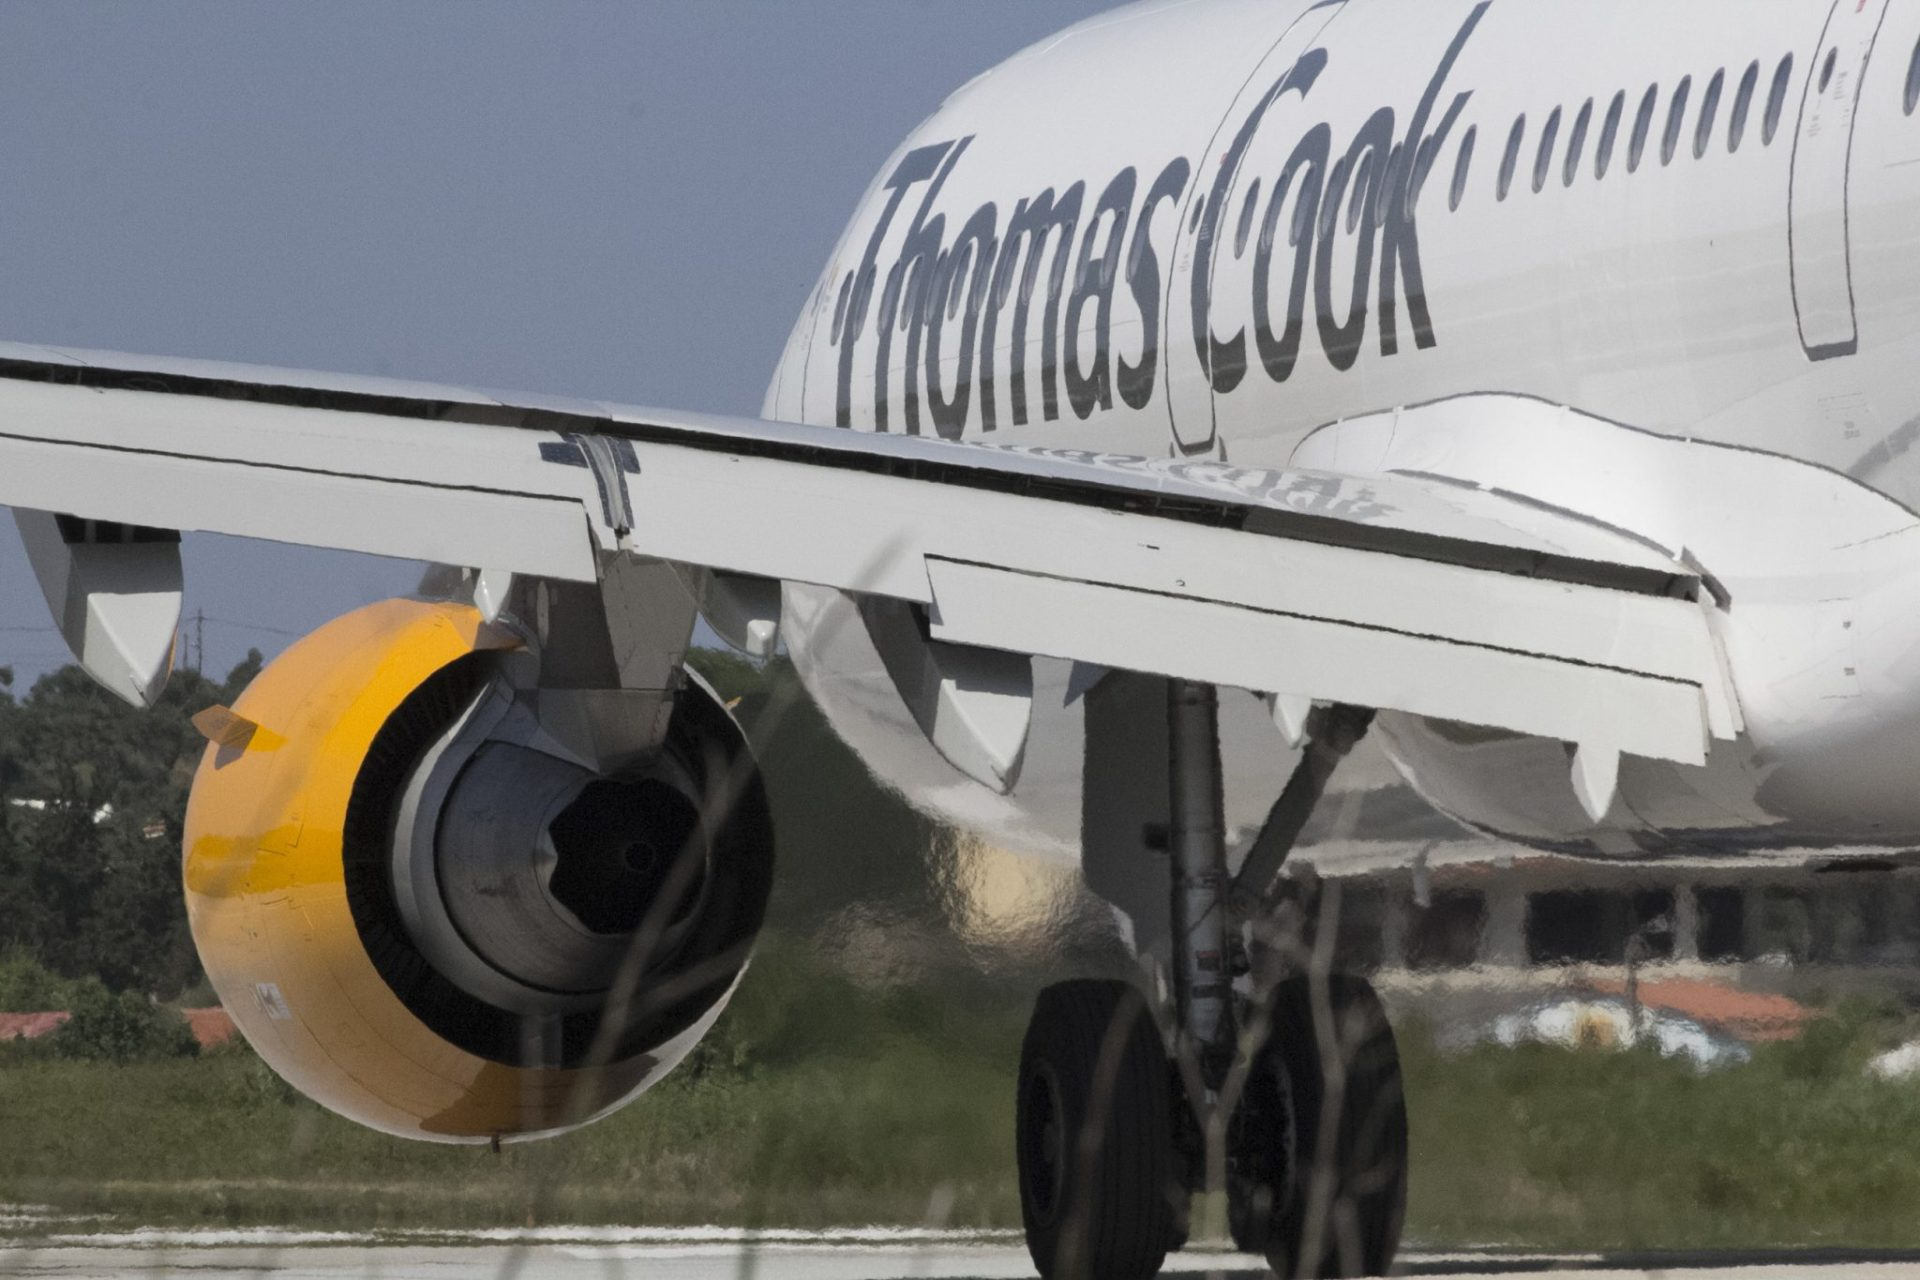 China's Fosun in talks to invest USD 940 million in Thomas Cook